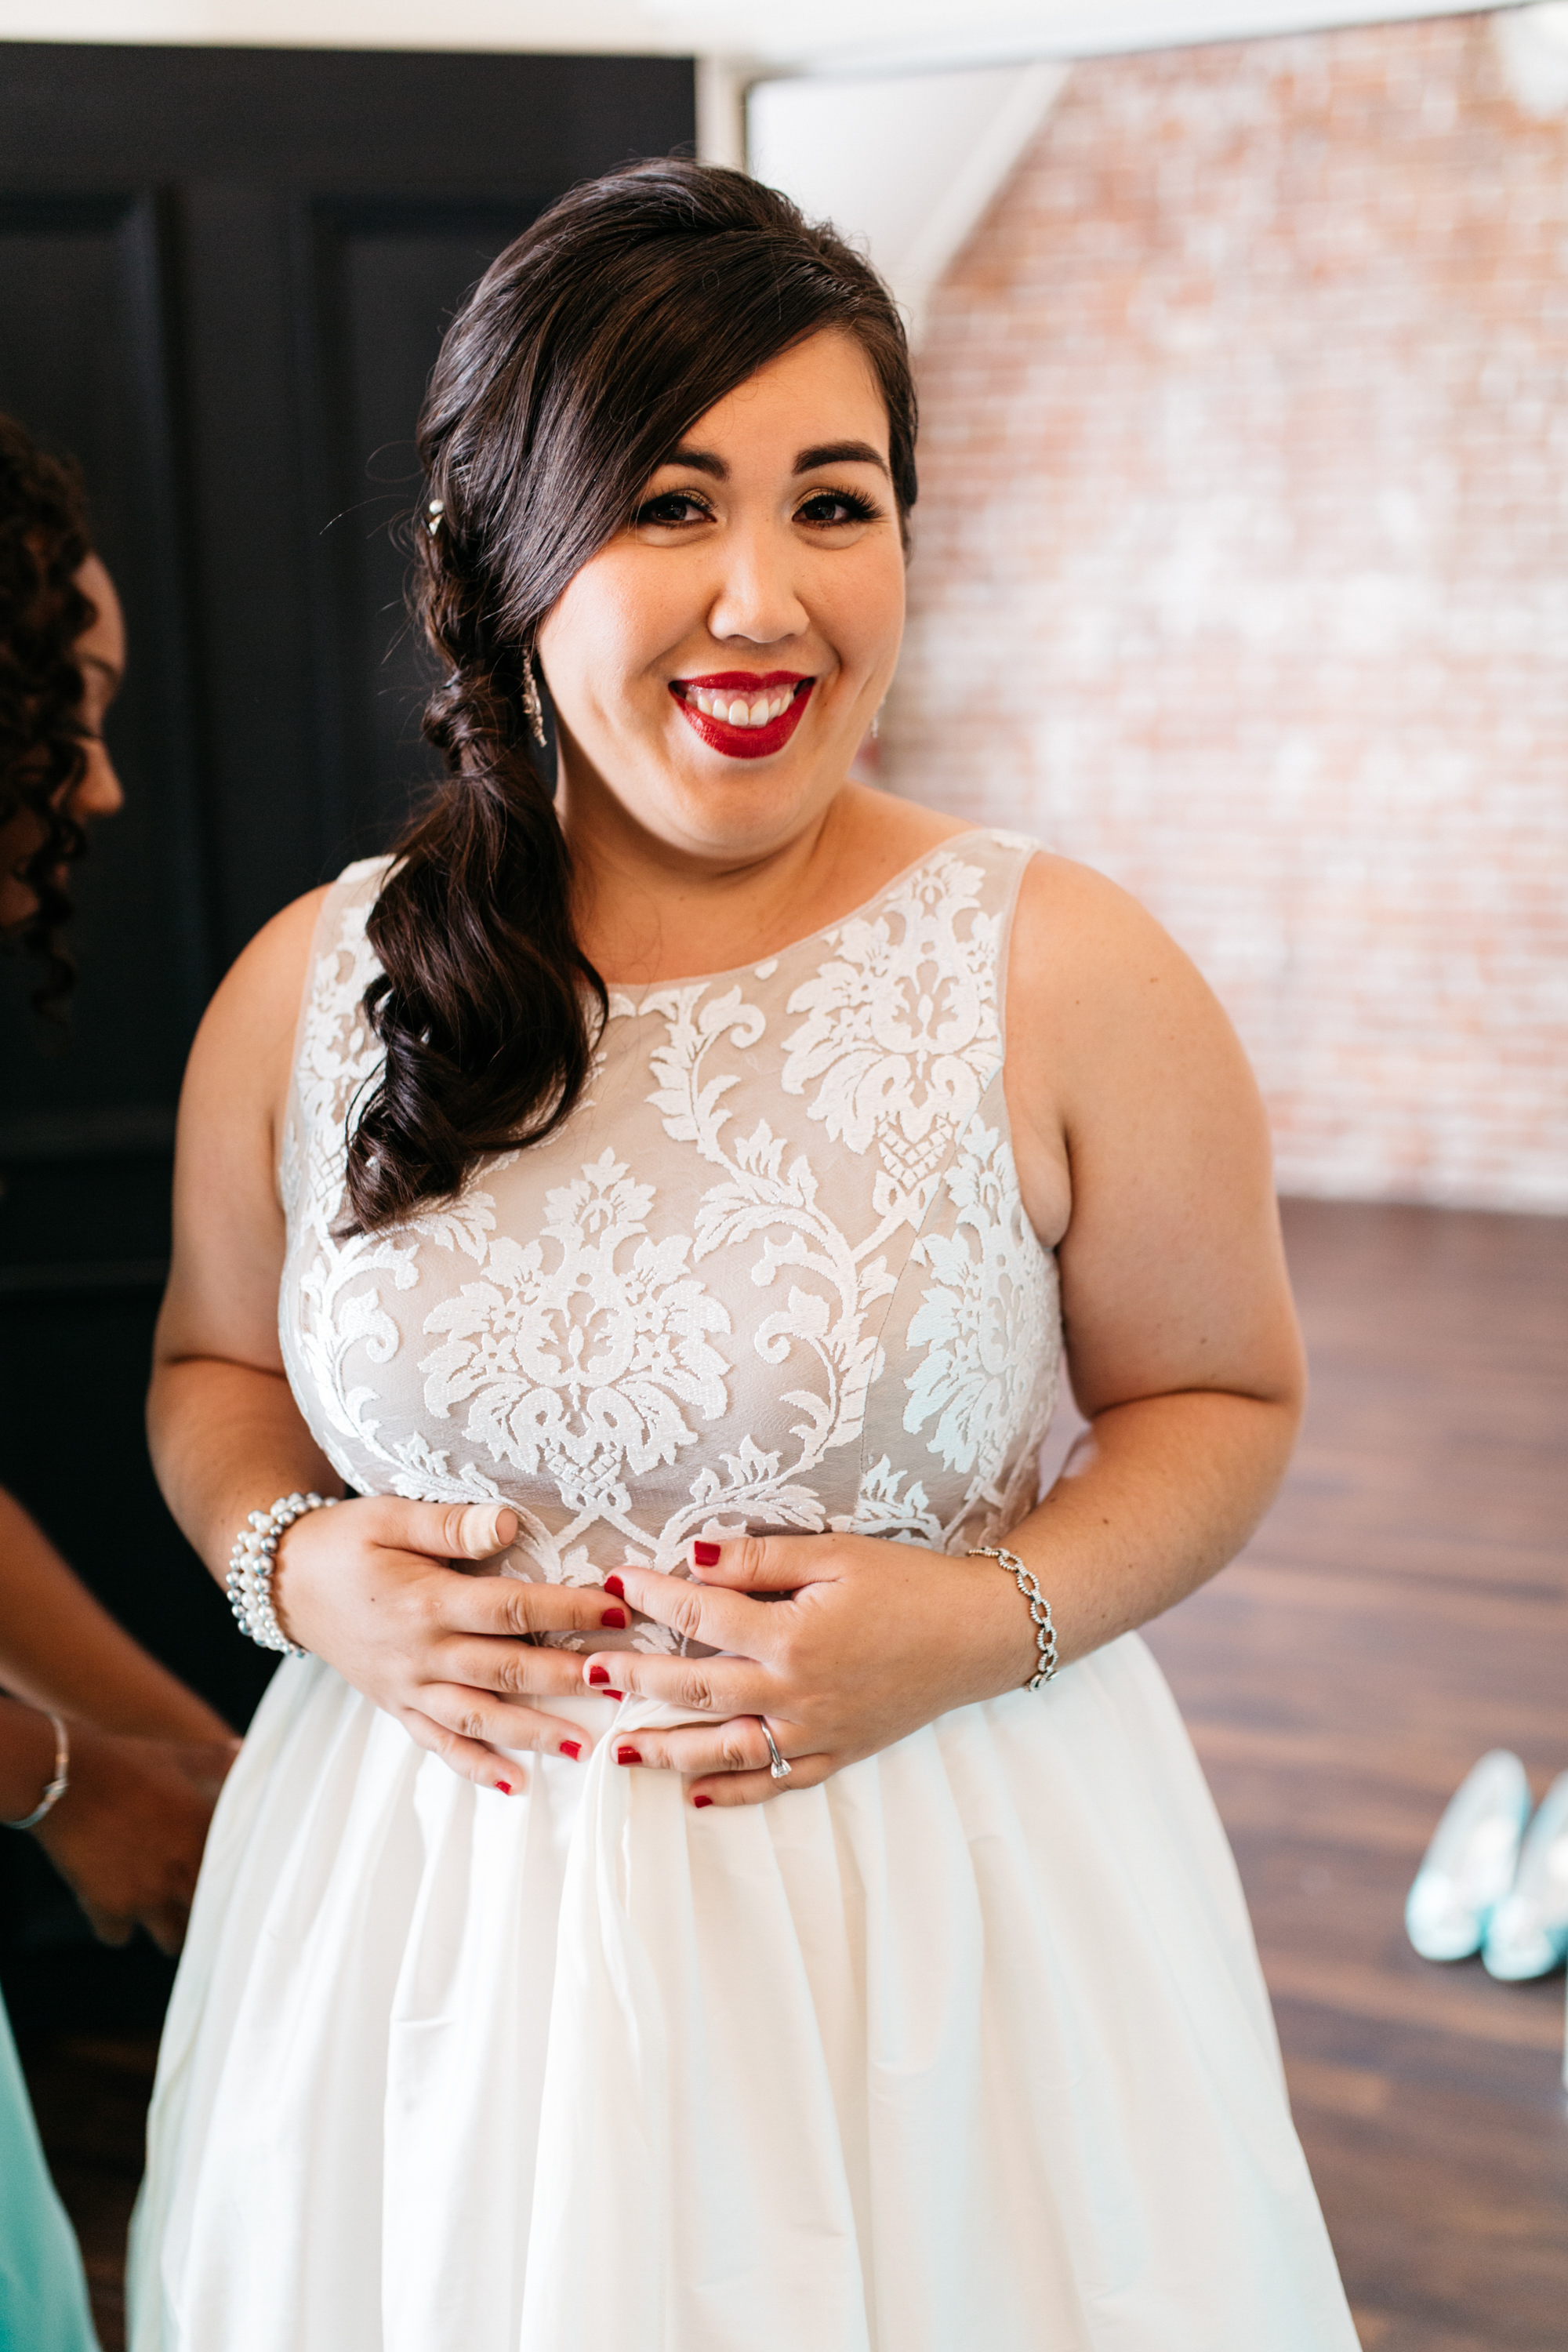 SamErica Studios - Los Angeles Wedding Photographer - The Loft on Pine-28.jpg